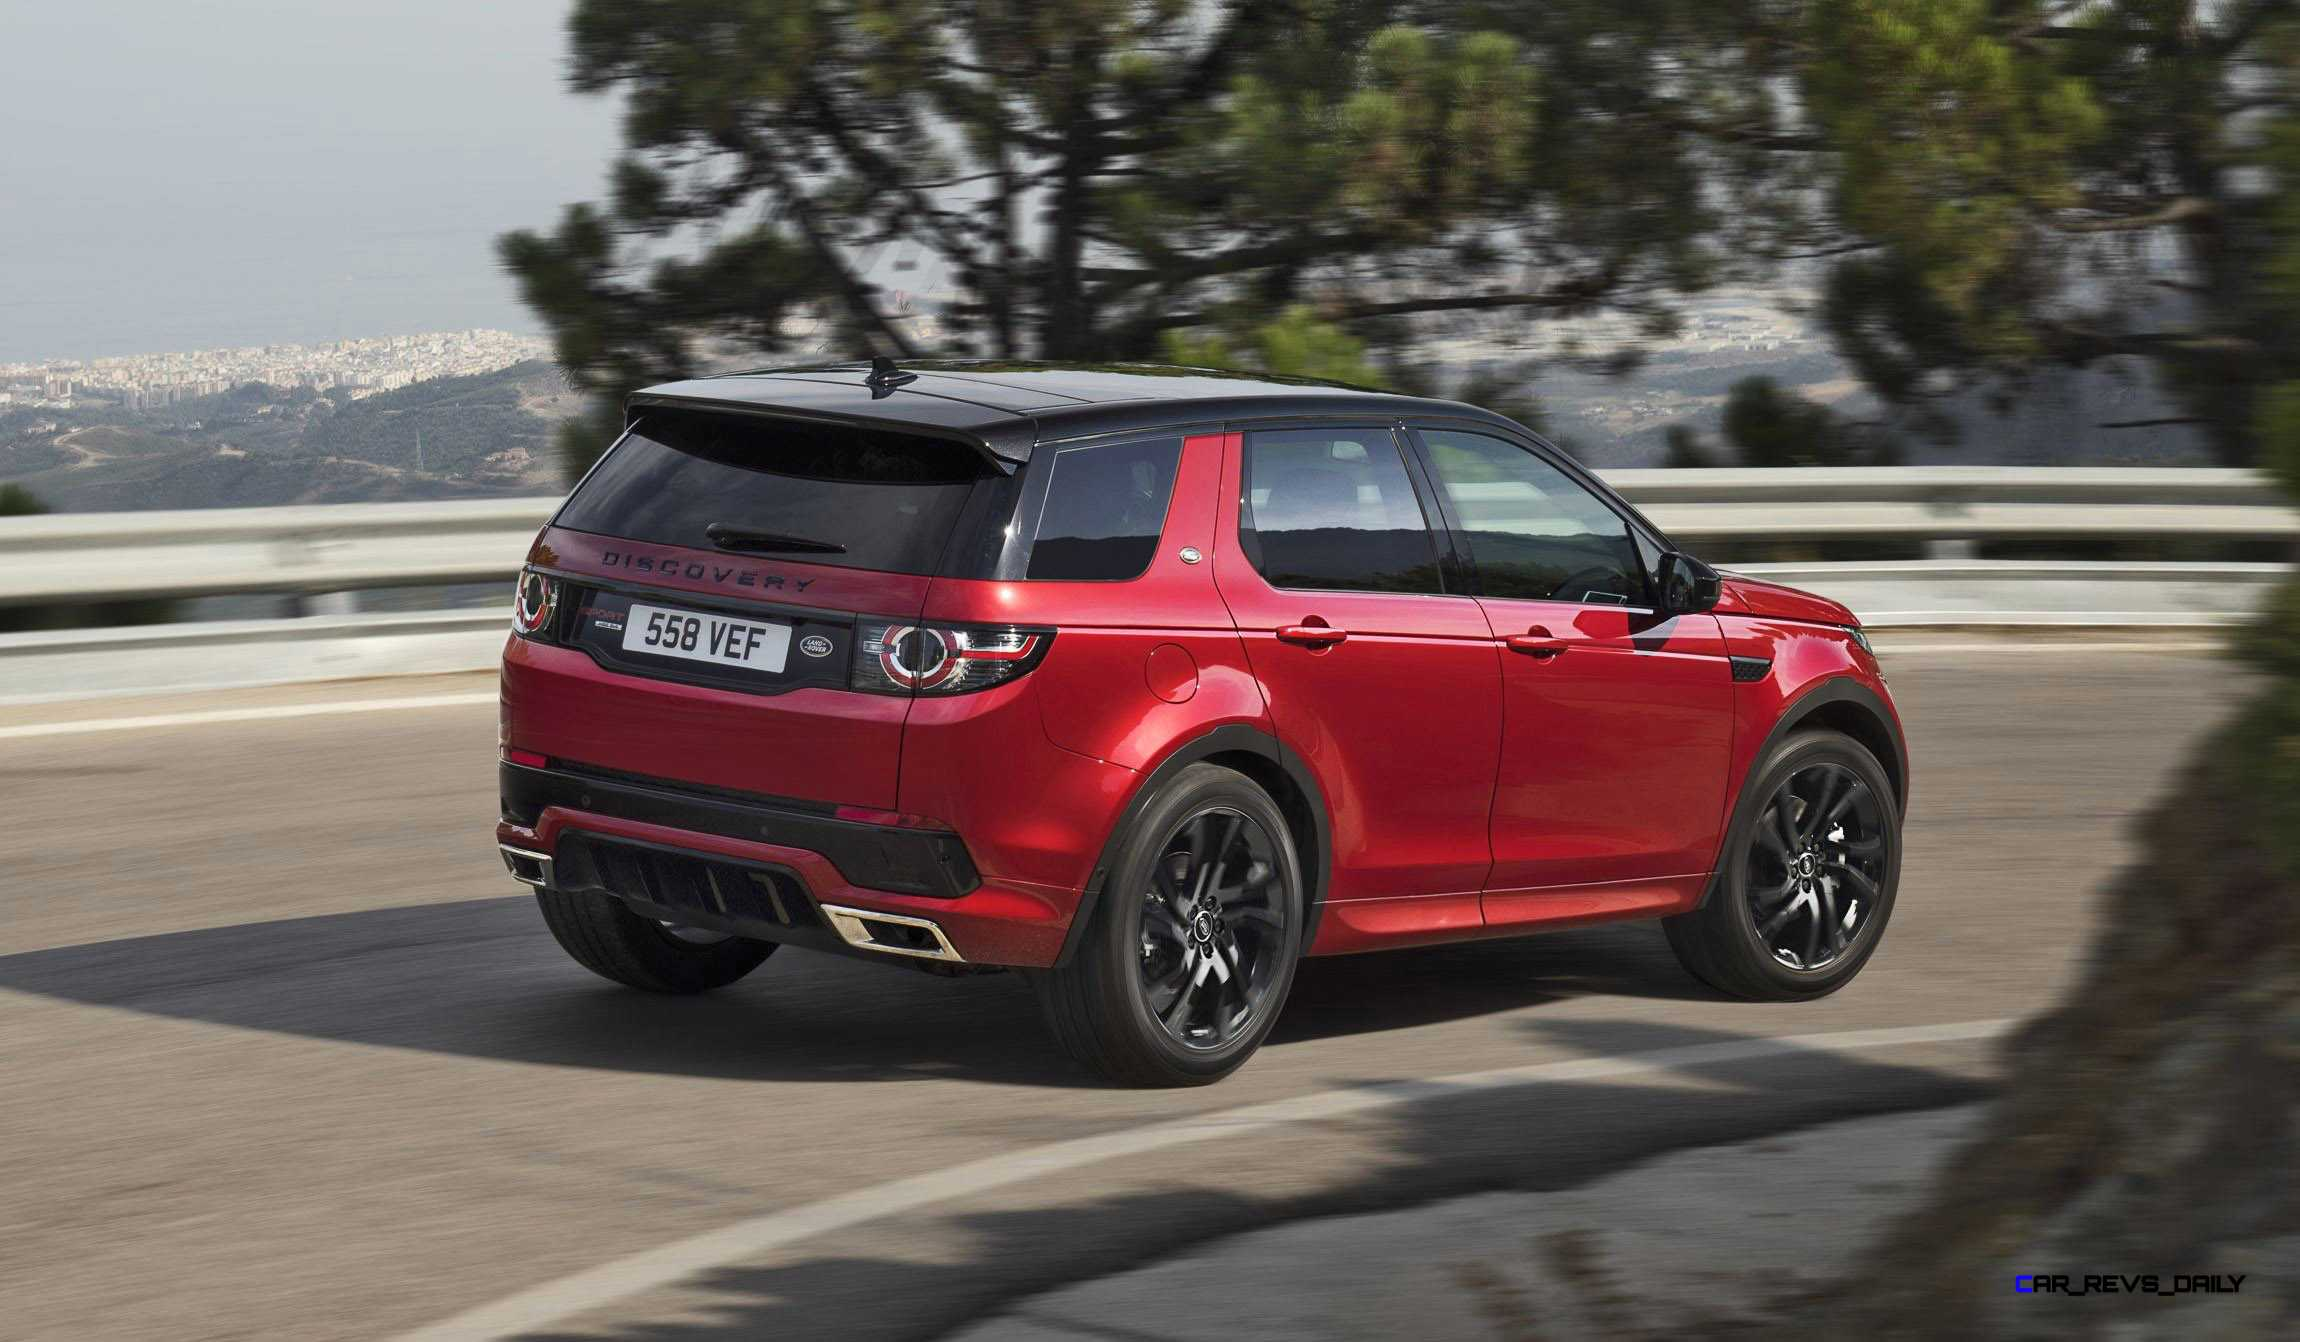 http://www.car-revs-daily.com/wp-content/uploads/2015/09/2016-Land-Rover-Discovery-Sport-DYNAMIC-Edition-16.jpg